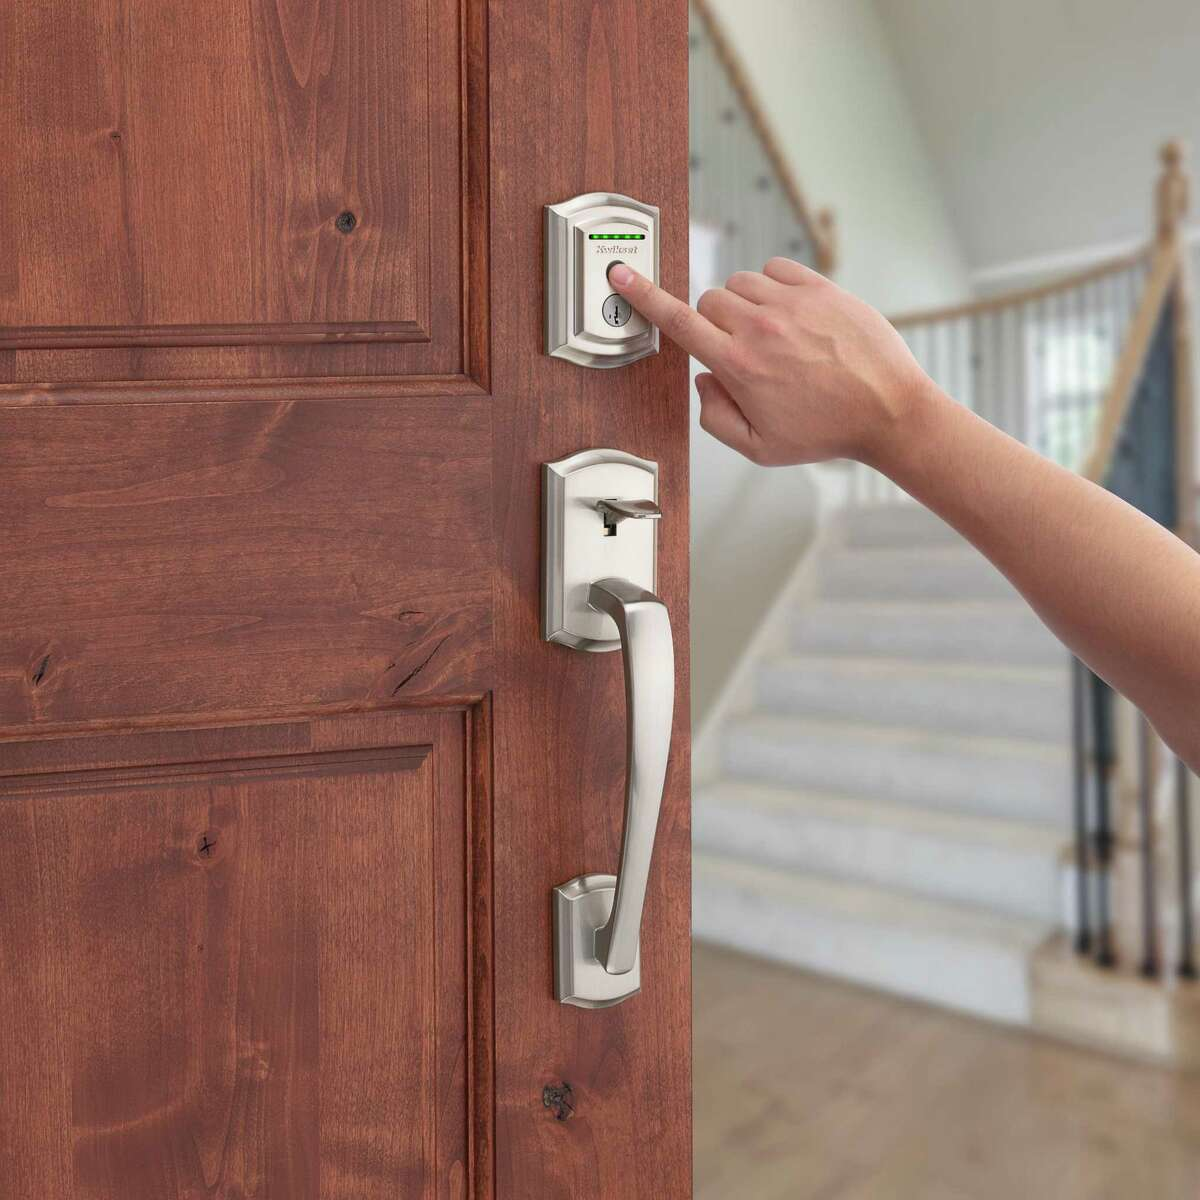 A smart lock, like the Kwikset Halo Touch, uses the homeowner's fingerprint to lock and unlock the door.